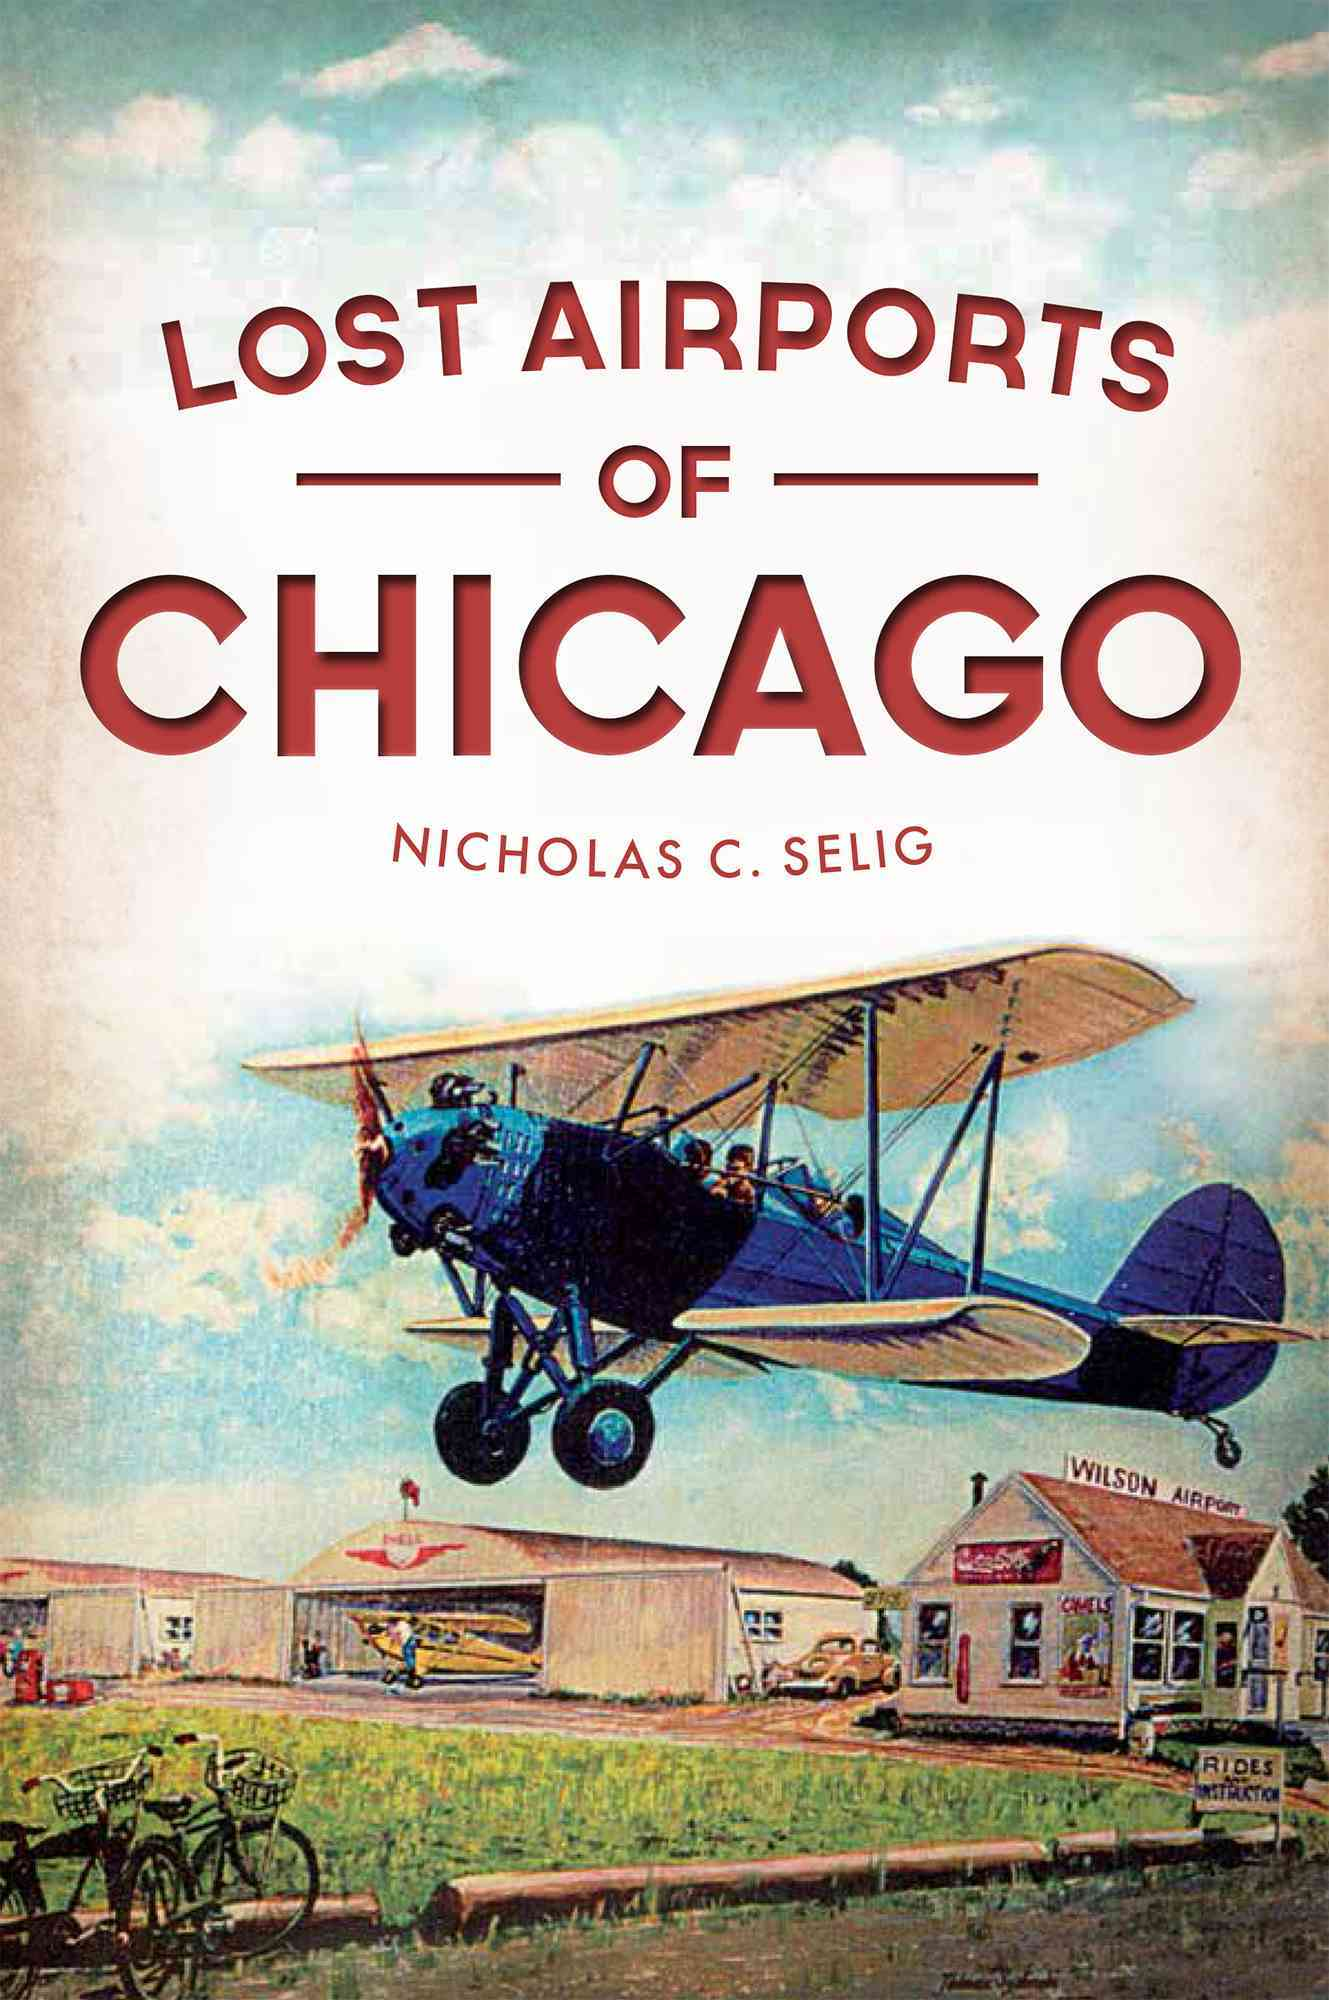 Lost Airports of Chicago By Selig, Nicholas C.